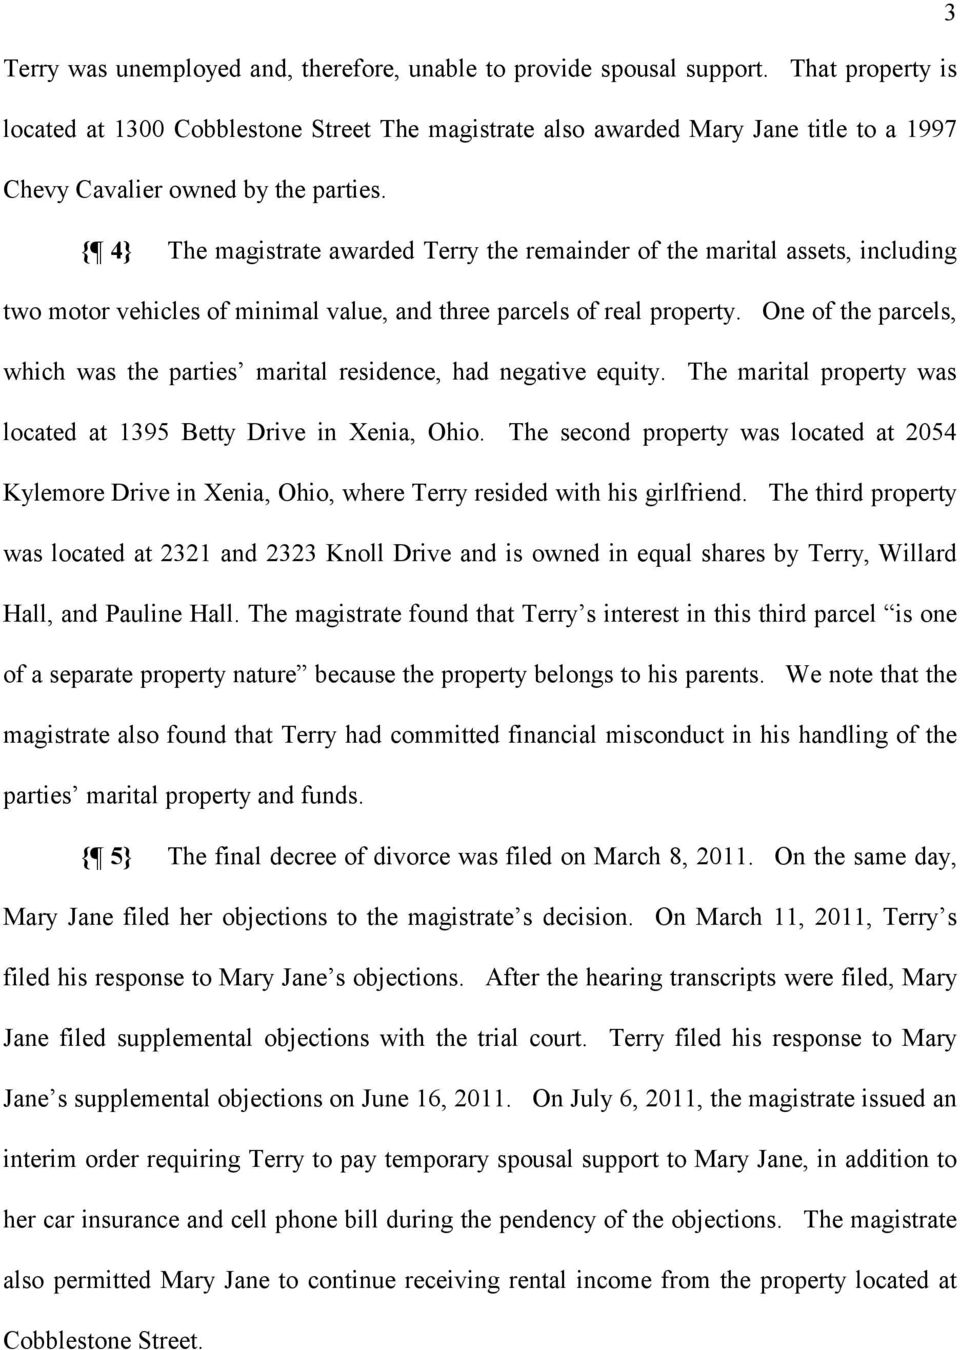 { 4} The magistrate awarded Terry the remainder of the marital assets, including two motor vehicles of minimal value, and three parcels of real property.